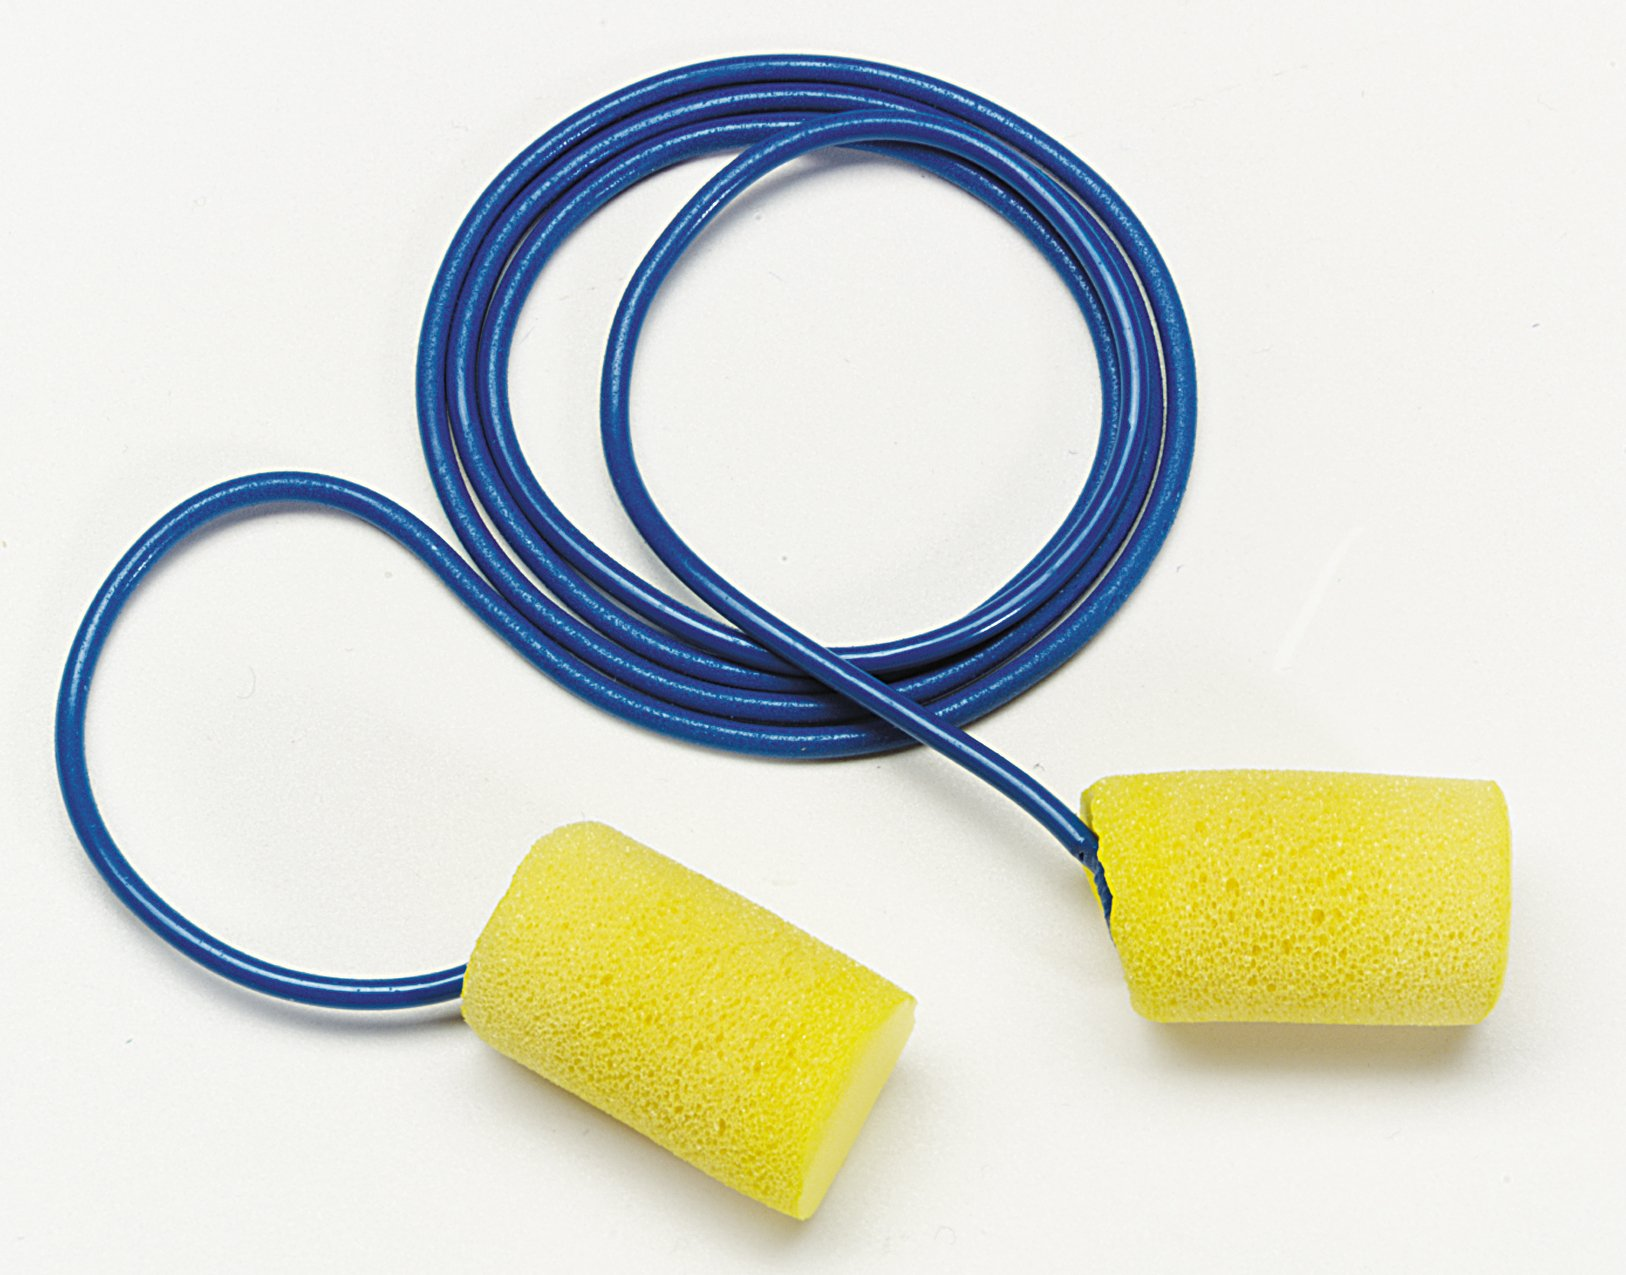 3M E-A-R Classic Corded Earplugs 311-1110, in Paper bag by 3M Personal Protective Equipment